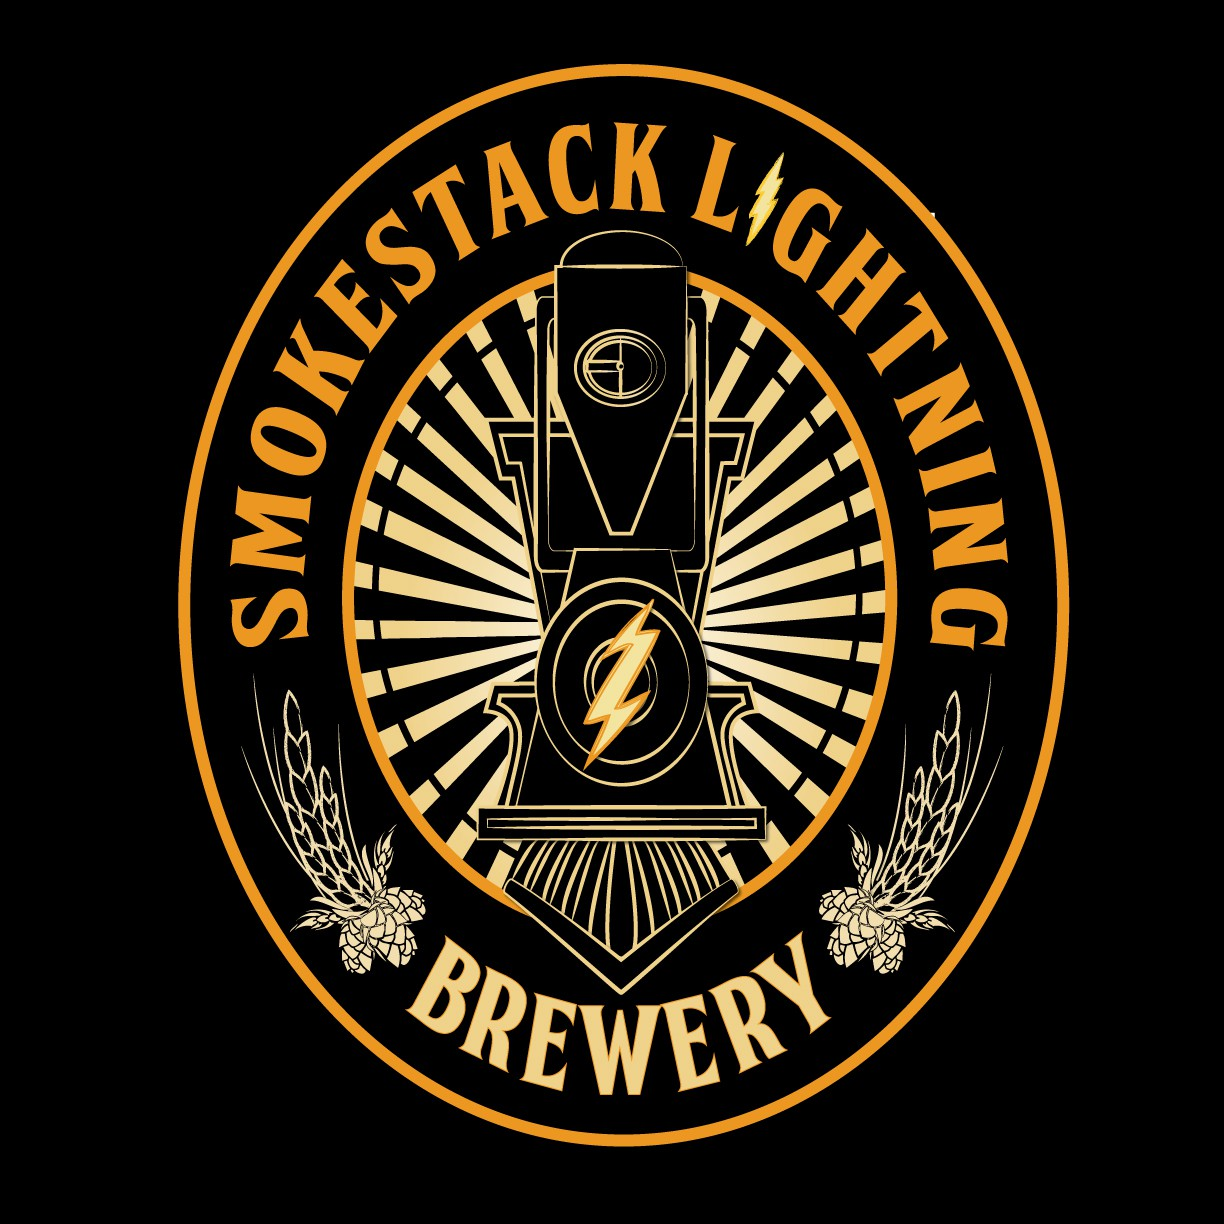 SMOKESTACK LIGHTNING BREWERY needs a new logo